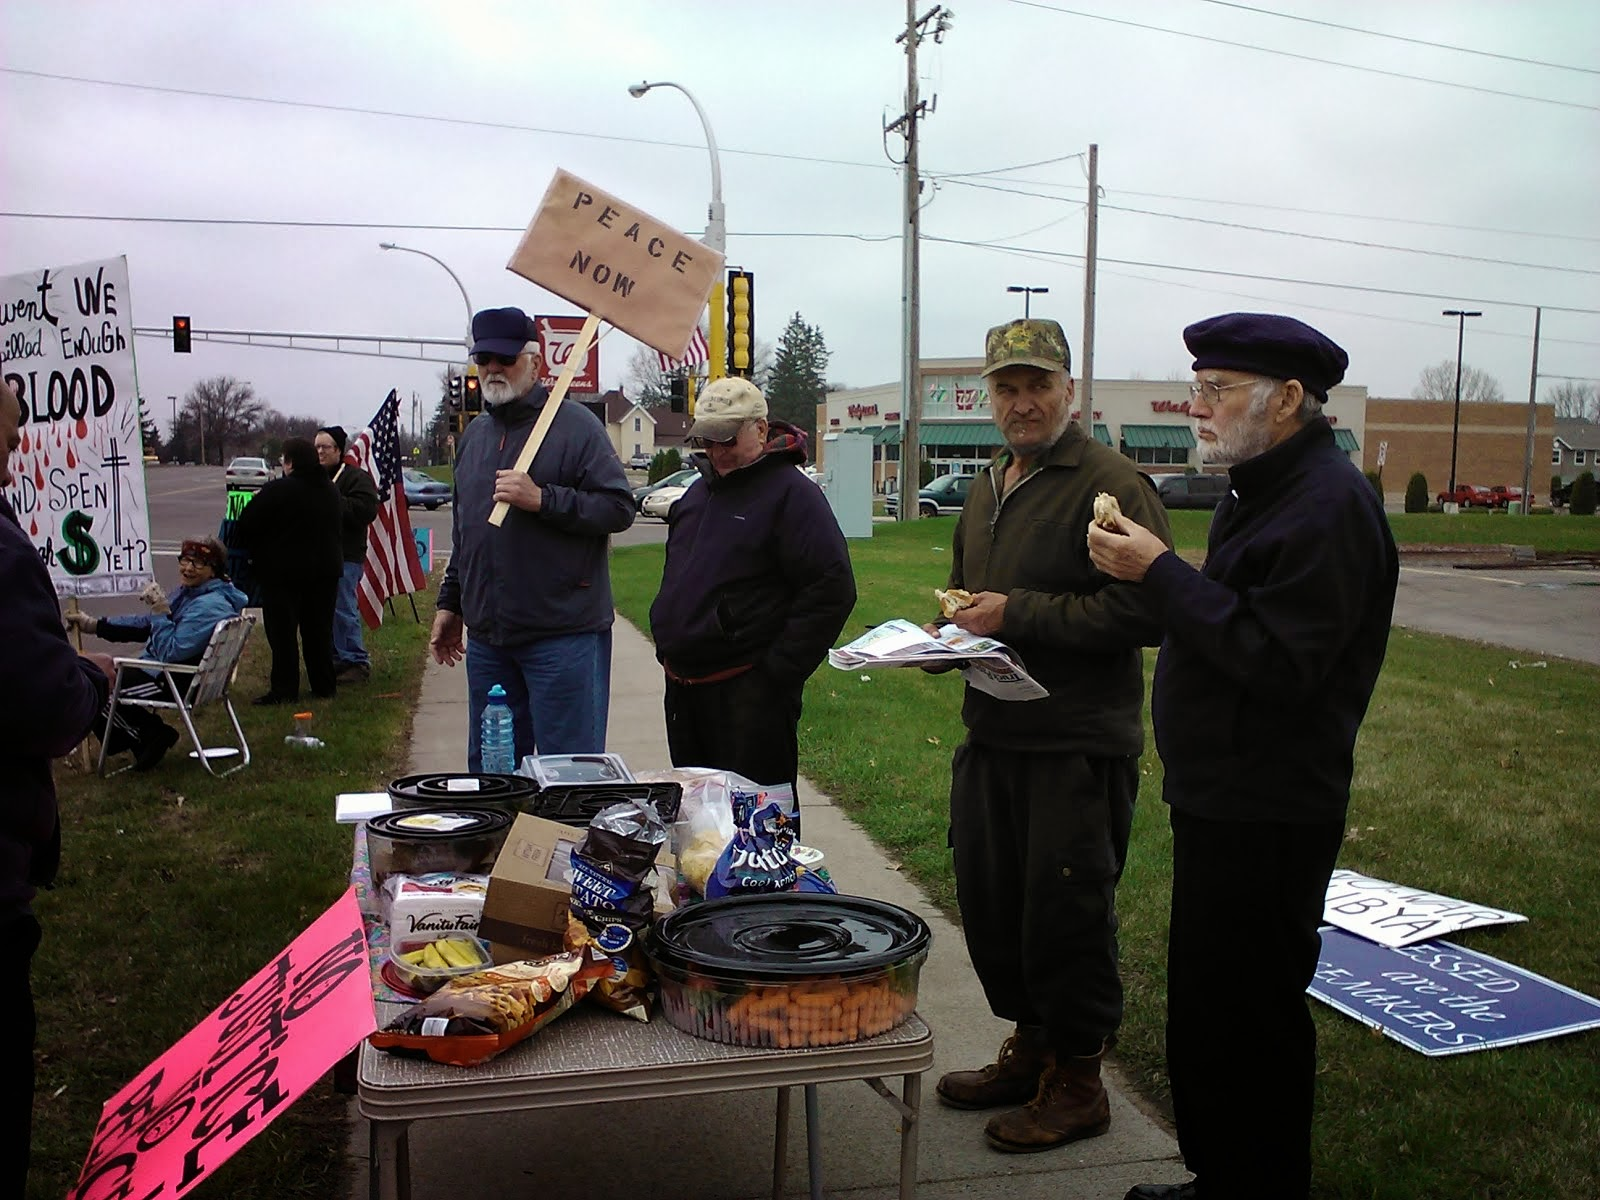 March 30,2012 Demonstration Little Falls, MN